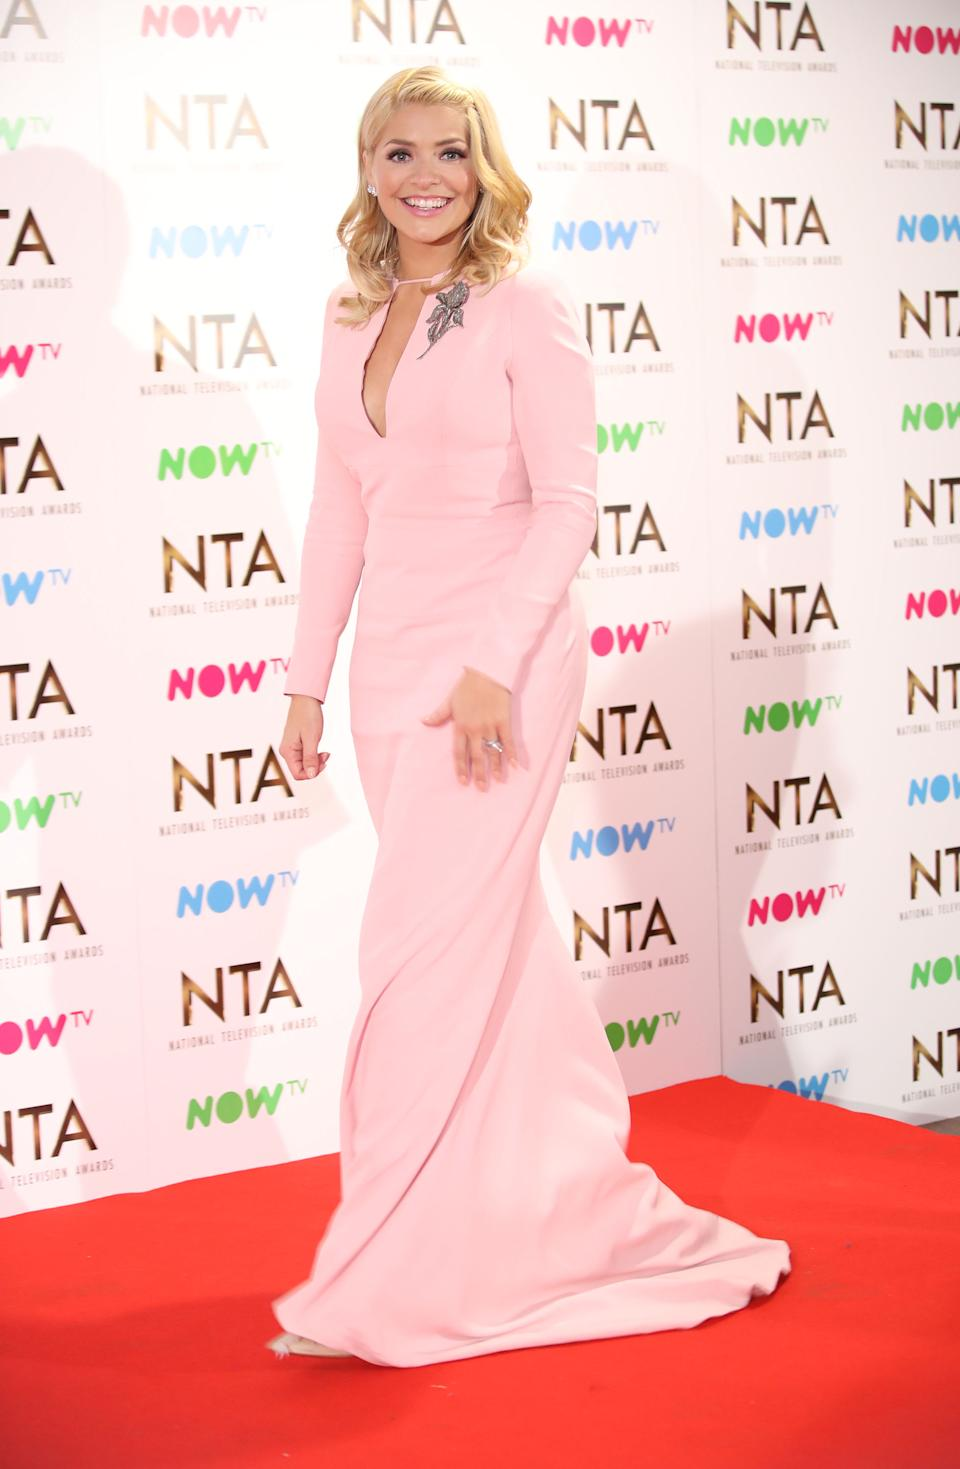 LONDON, ENGLAND - JANUARY 25: Holly Willoughby  poses in the winners room at the National Television Awards at The O2 Arena on January 25, 2017 in London, England.  (Photo by Mike Marsland/Mike Marsland/WireImage)